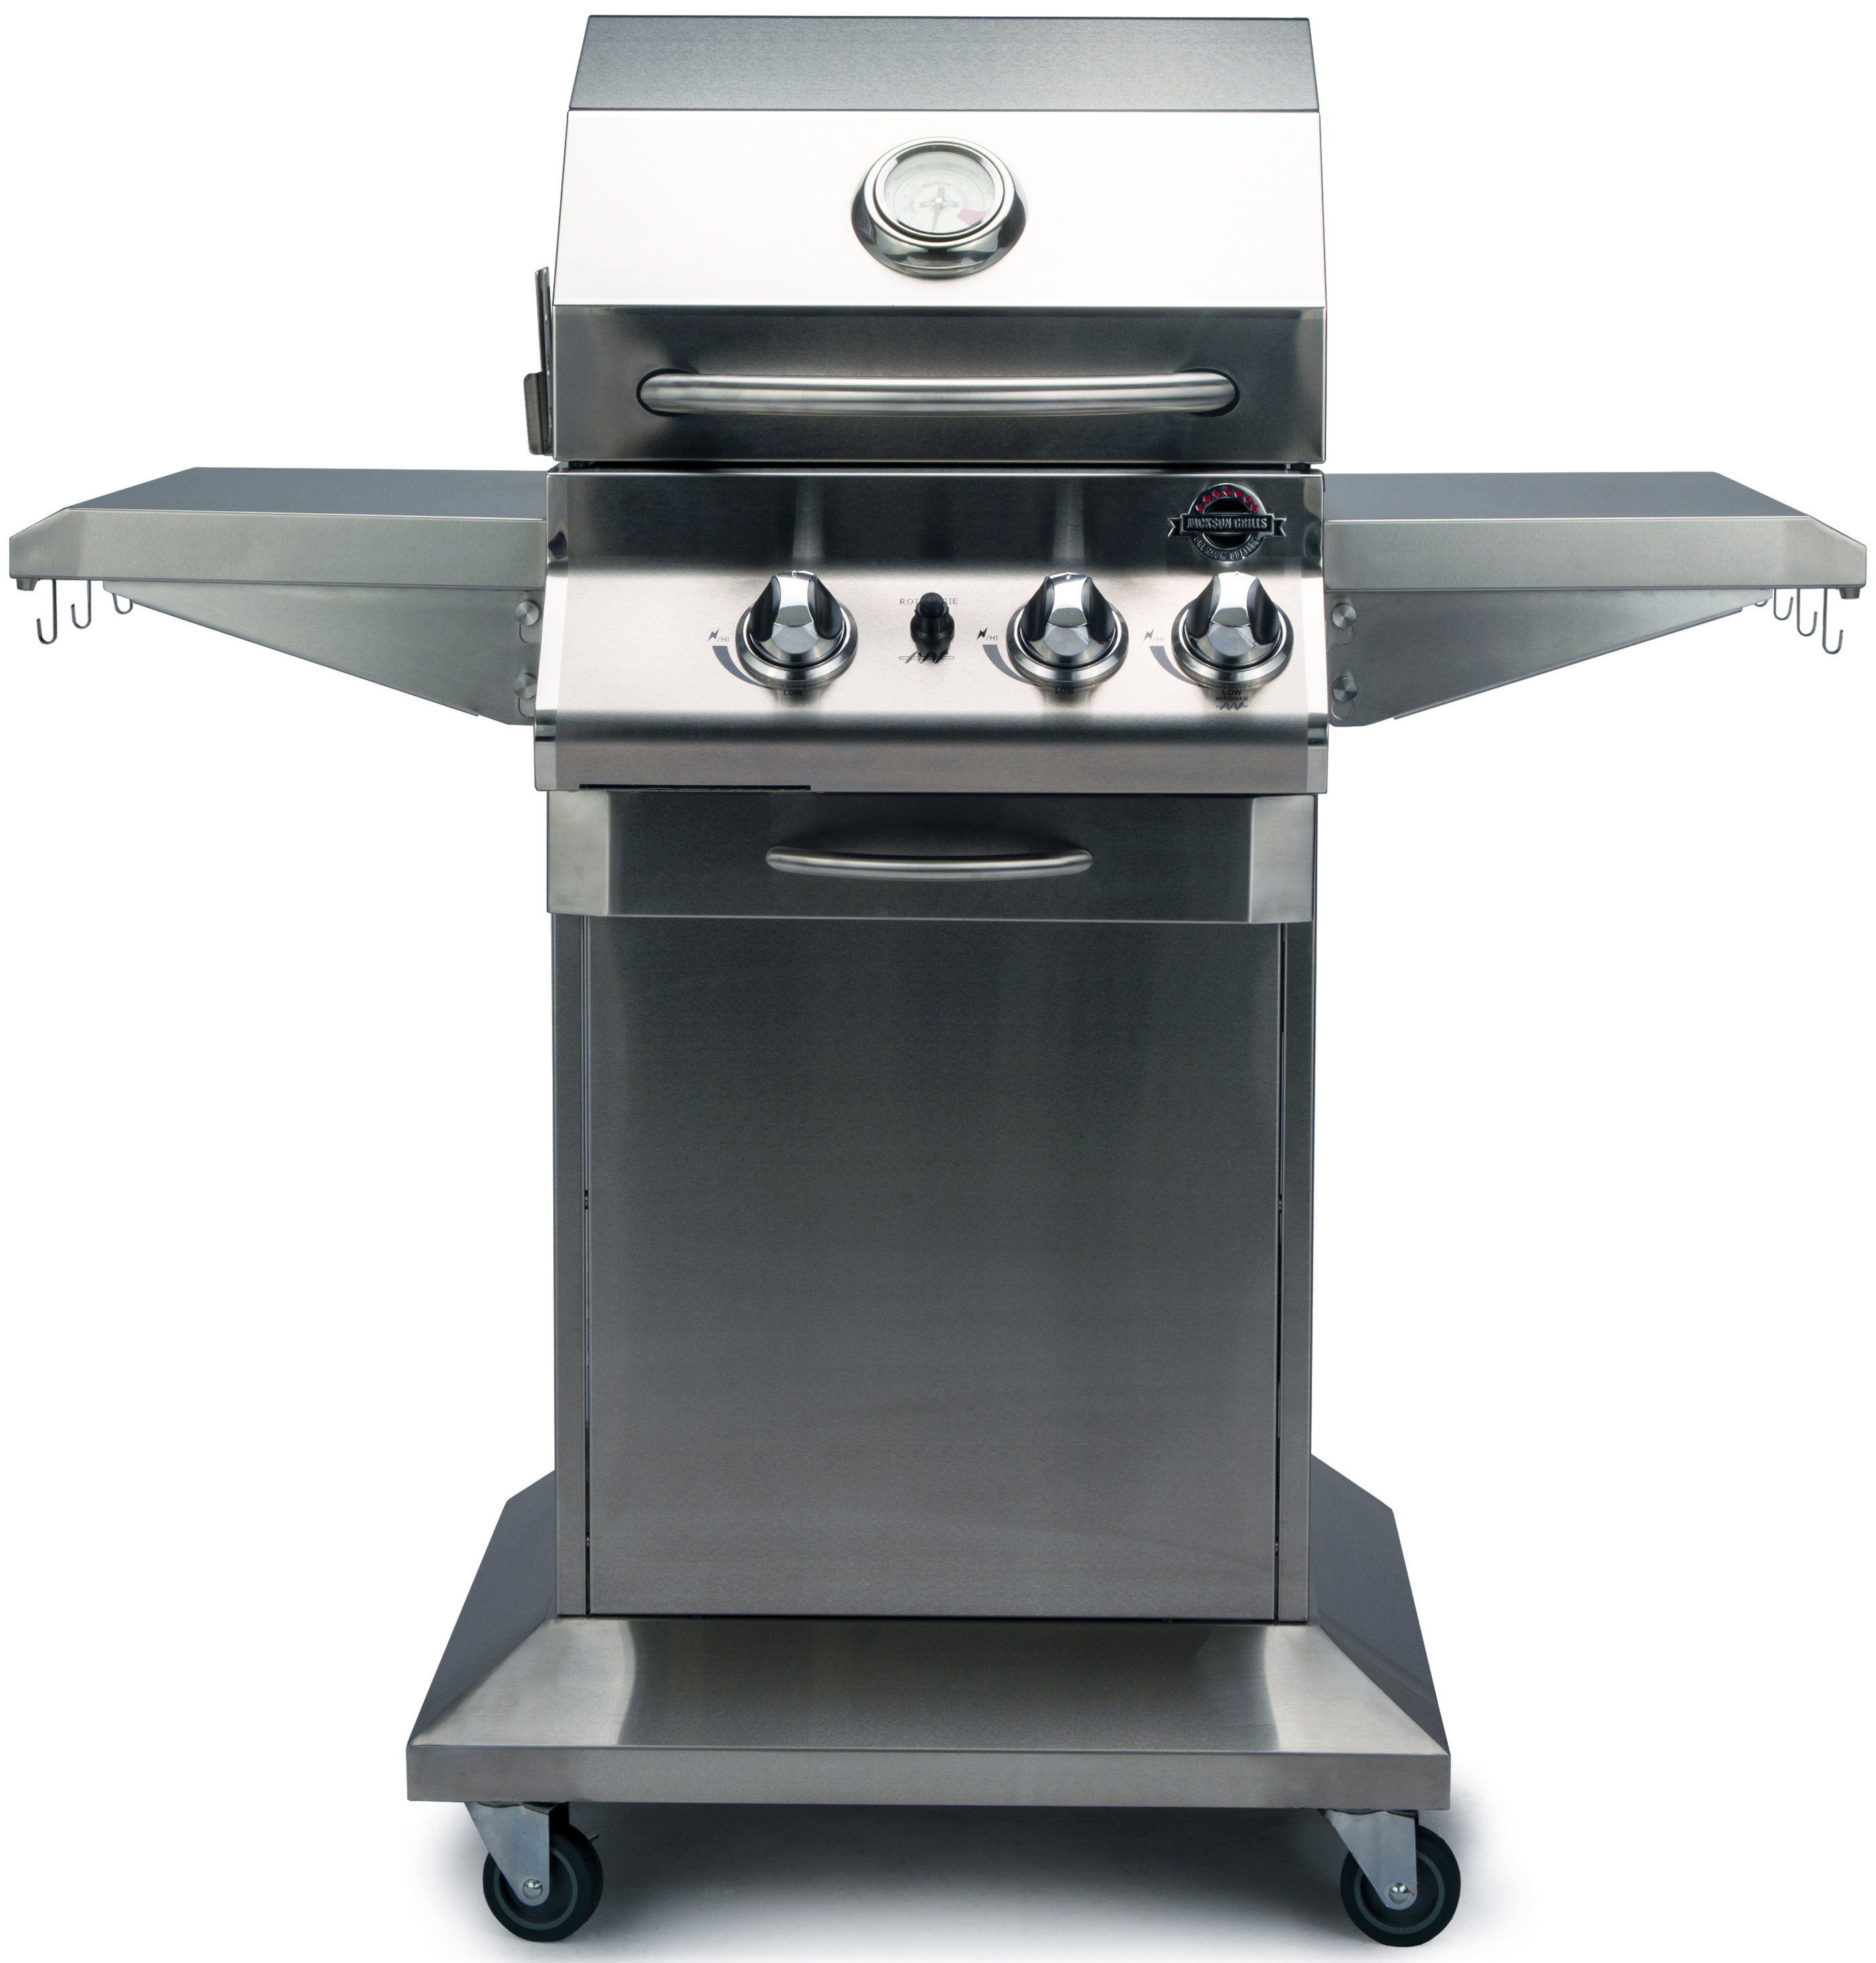 solaire fr infrared built products grills standing grill hu in free pedestal wr gas